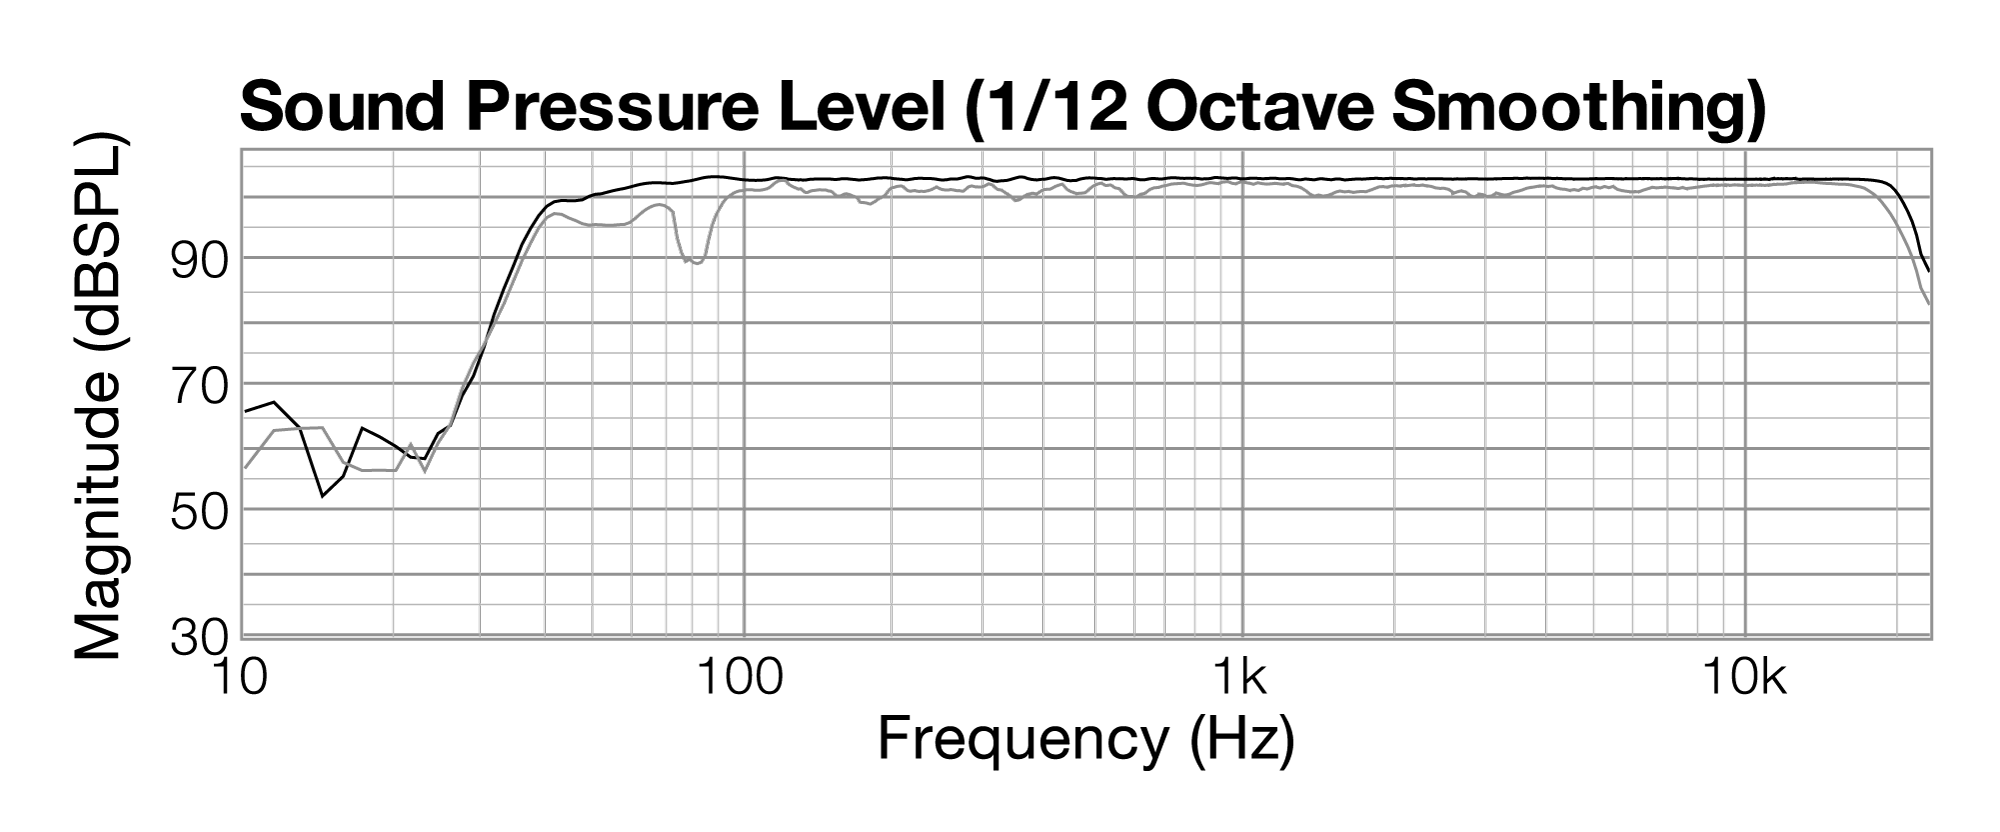 Chapter 4 Sound Perception And Acoustics Digital Music 320 Amp Meter Base Wiring Diagram Figure 430 Frequency Response Of Two Sources 1 Millisecond Apart